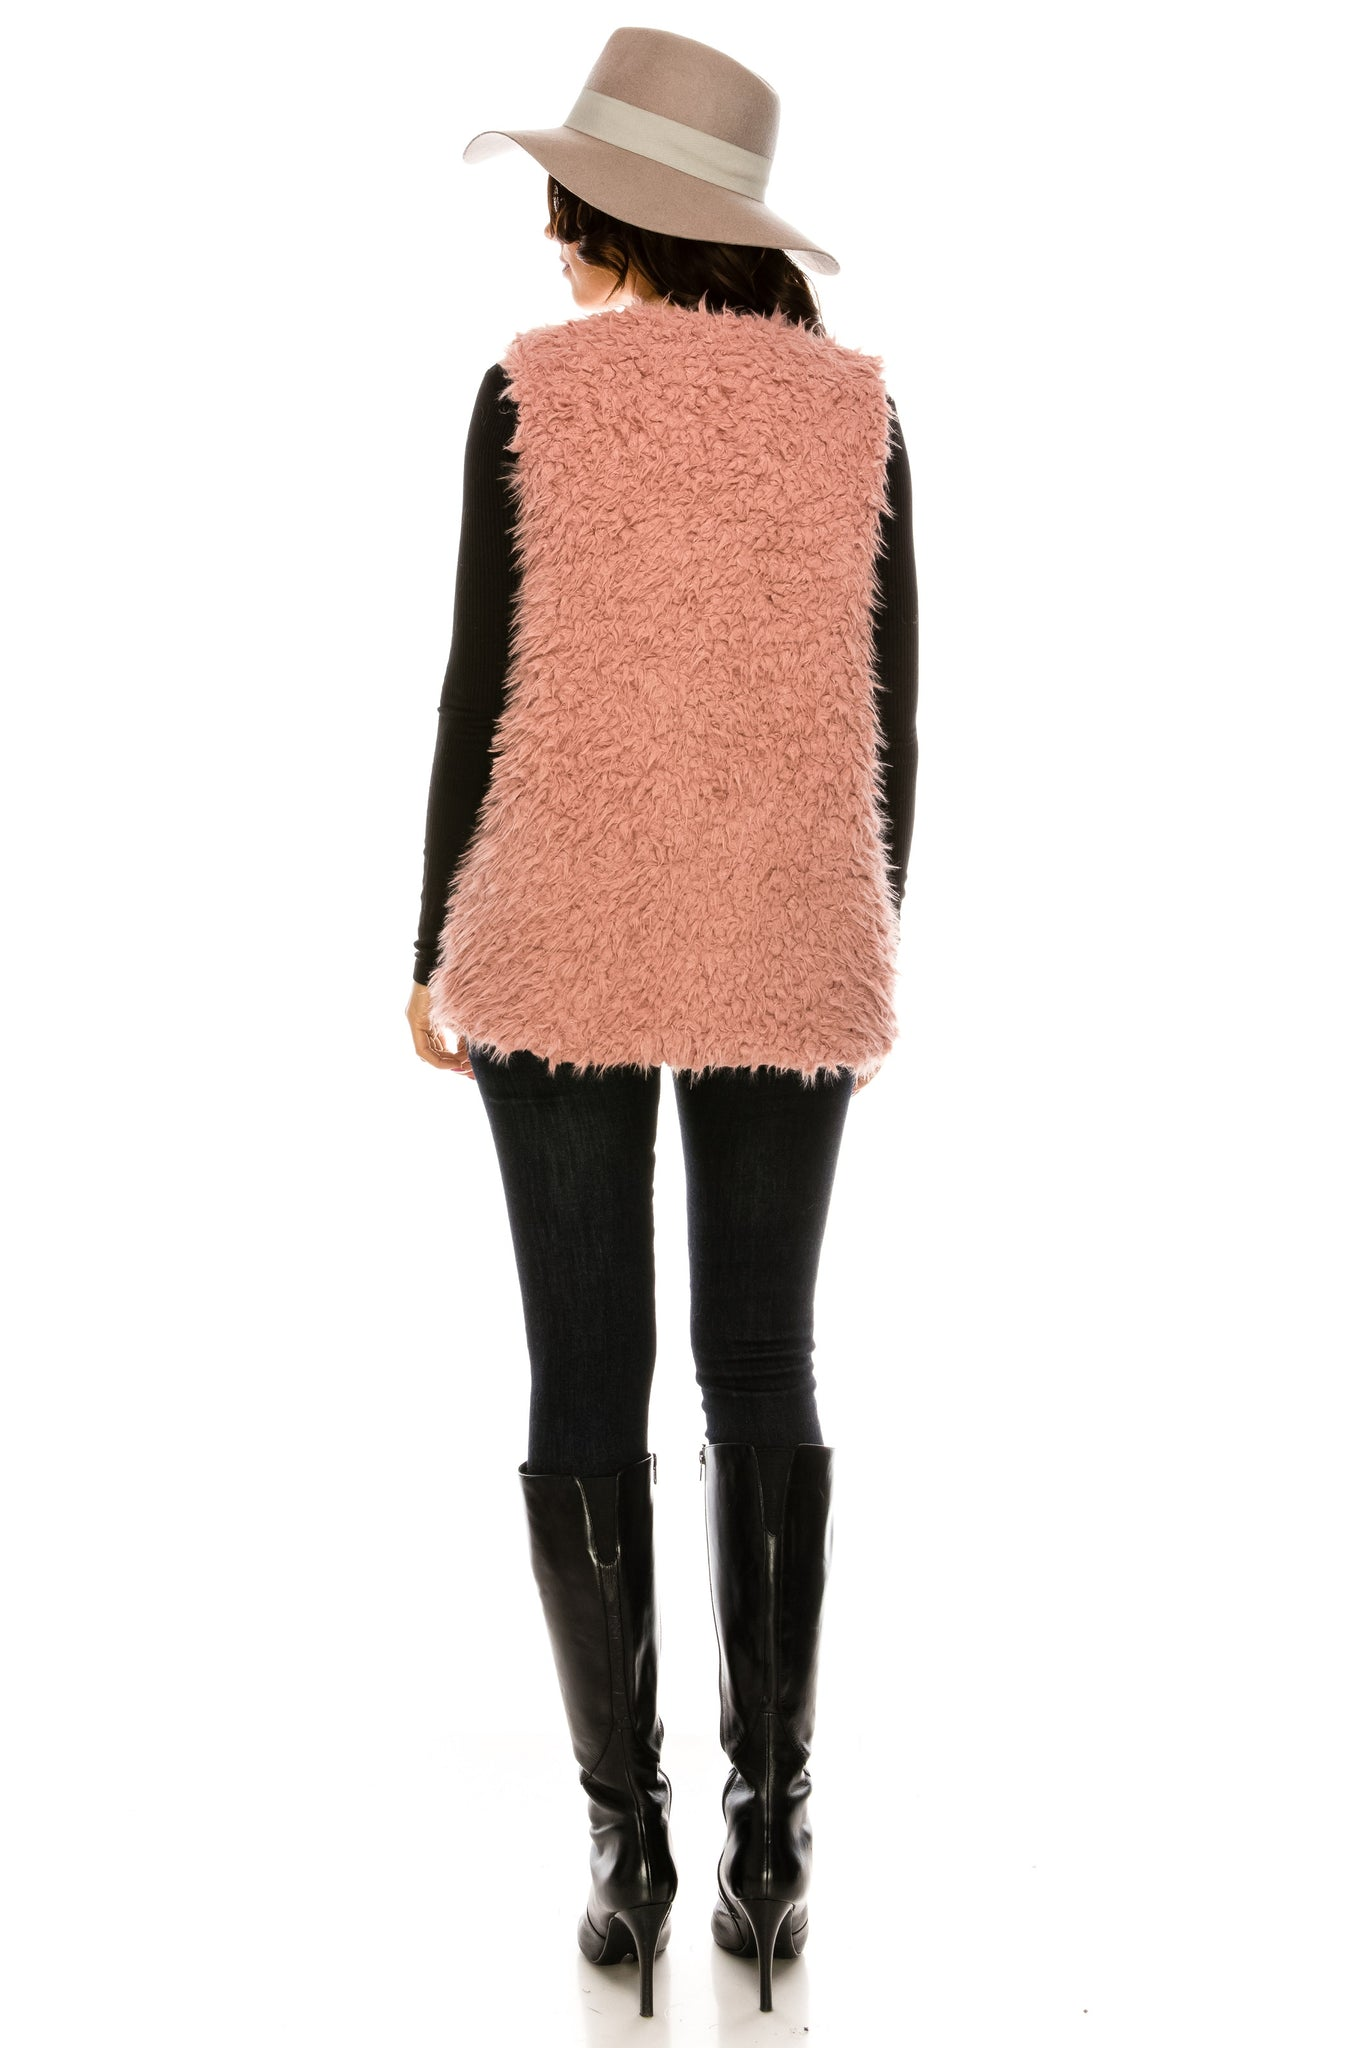 PC-105DP Faux fur vest